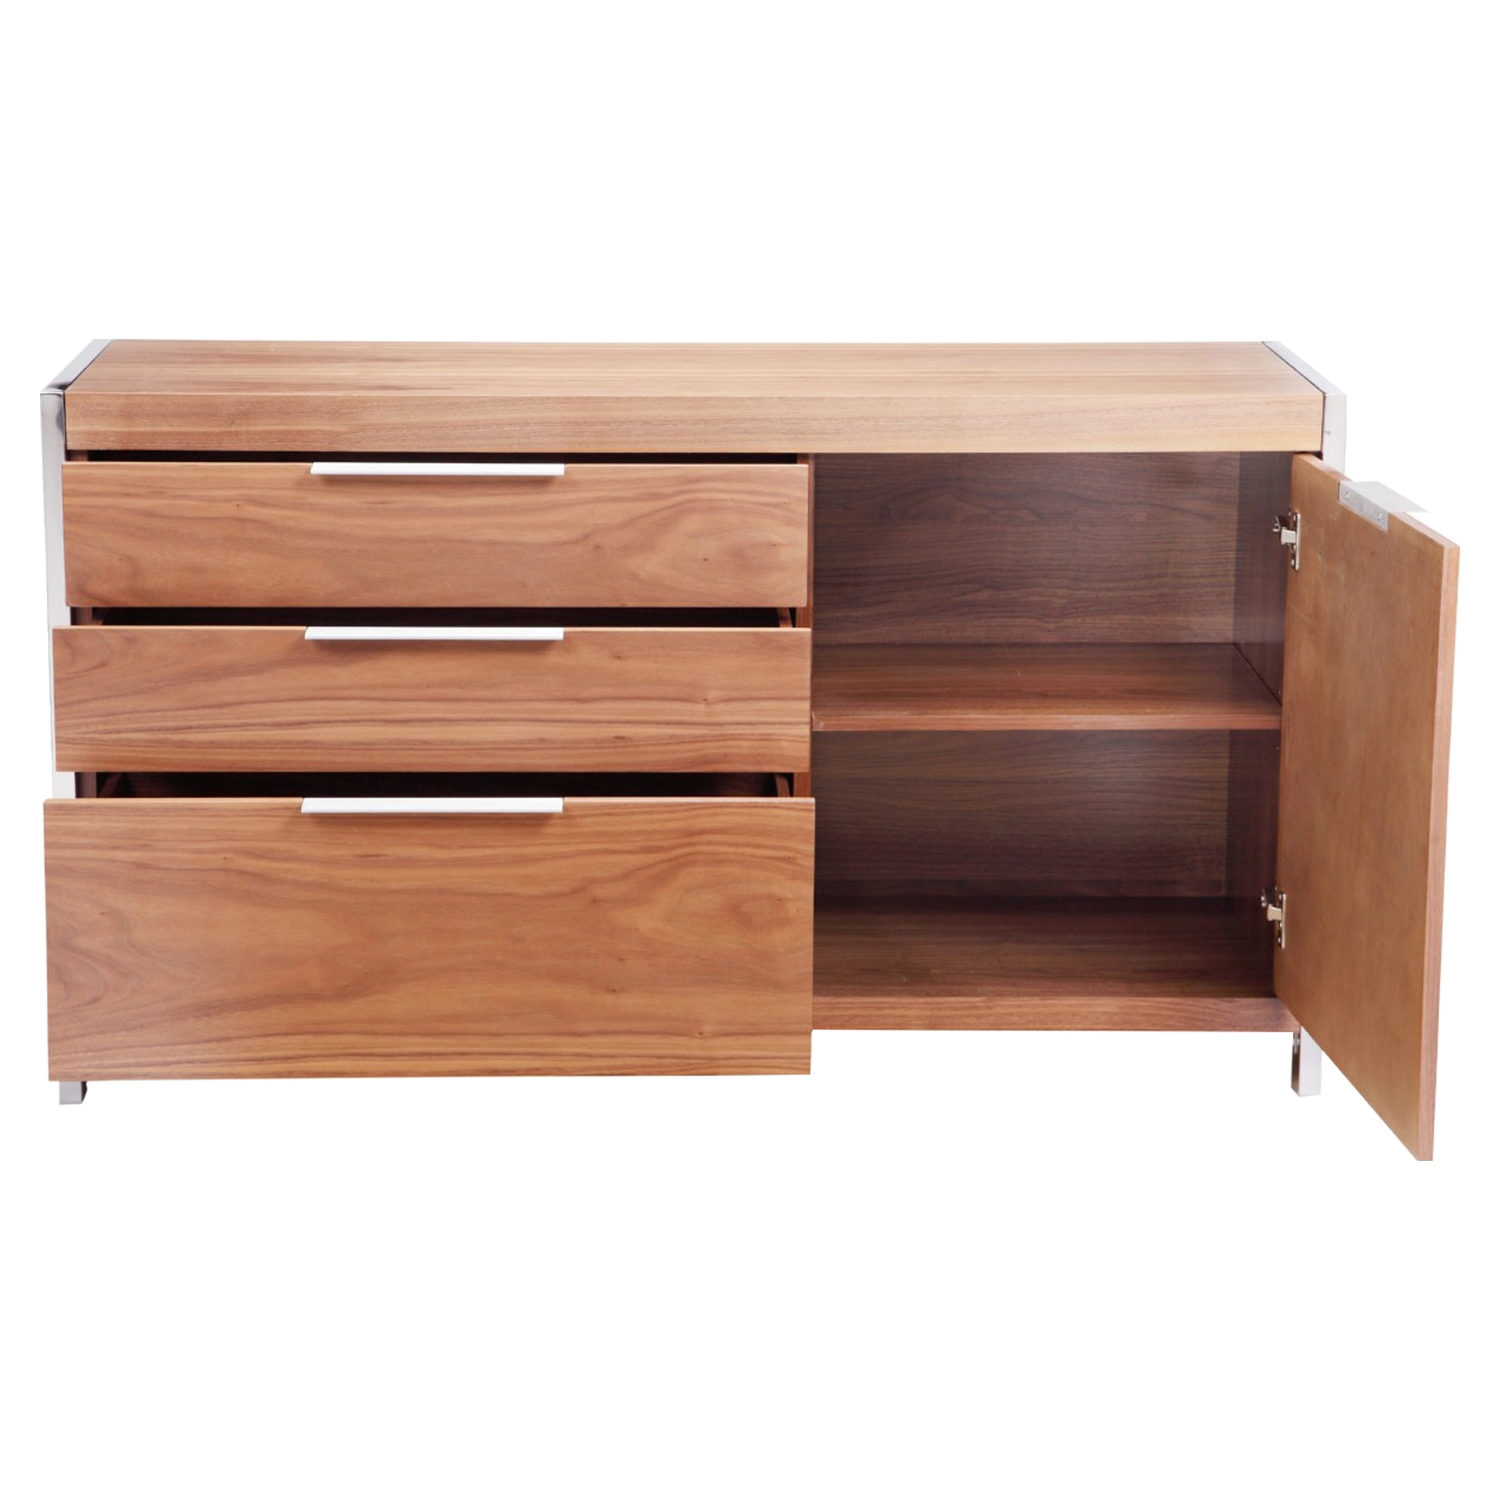 Neo Small Sideboard - 3 Drawers, 1 Door, Walnut - MOES-ER-2004-21